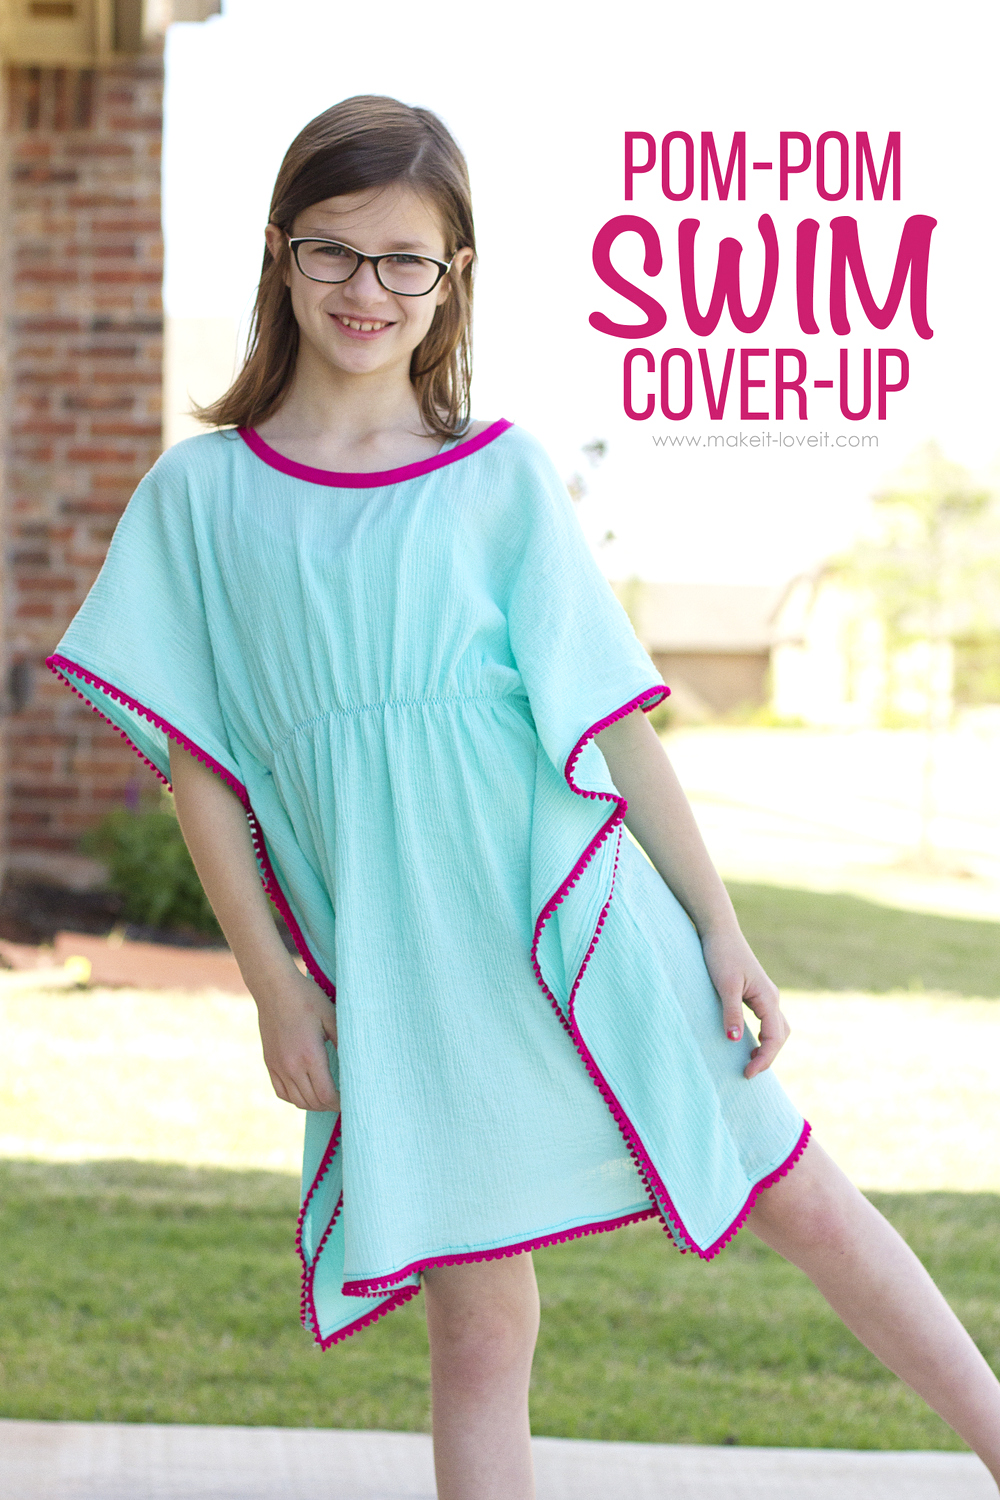 DIY Pom-Pom Swim Cover-Up